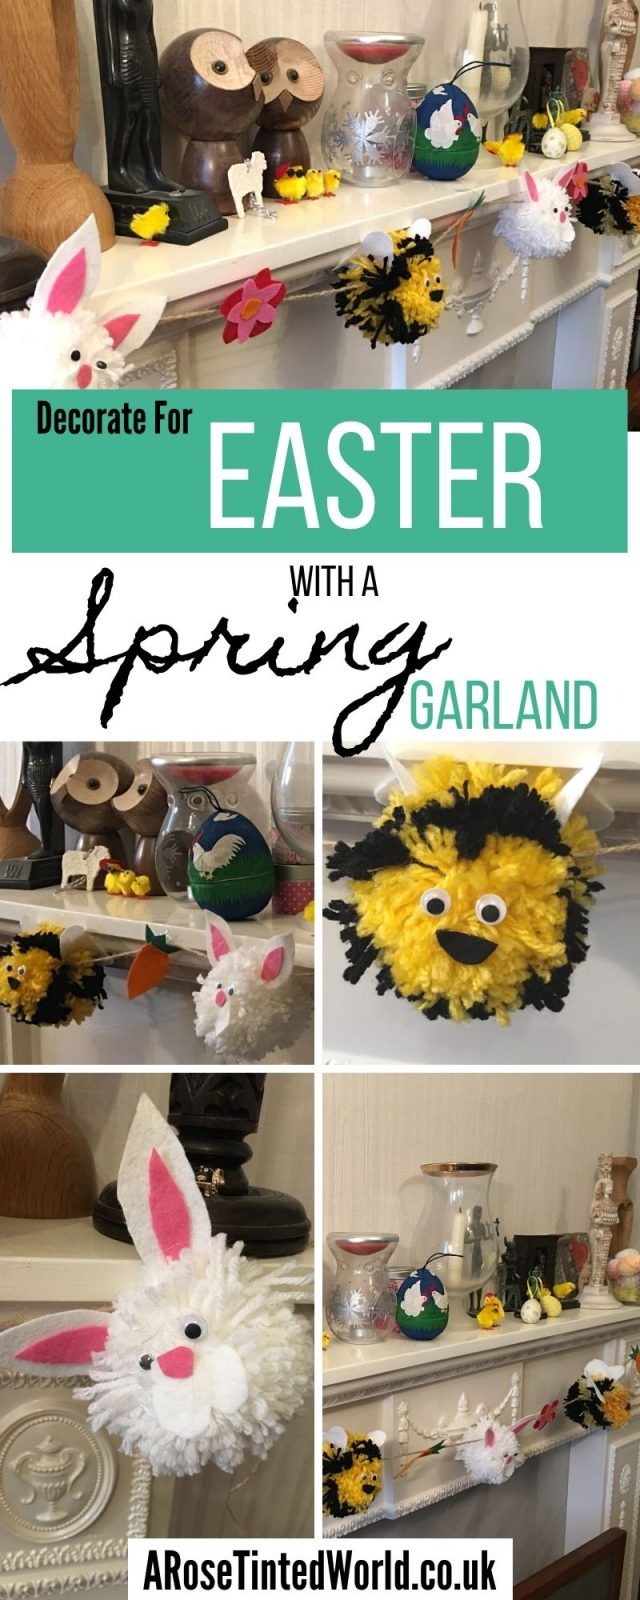 Make A Pom Pom Spring Garland - this wool and felt Easter decoration is a great DIY craft to do with the children. How to make Bee and Bunny Rabbit pompoms. #eastercrafts #easterdecor #springcrafts #springdecor #easterdecorations #easterdiy #springcraftsforkids #pompomcrafts #pompomgarland